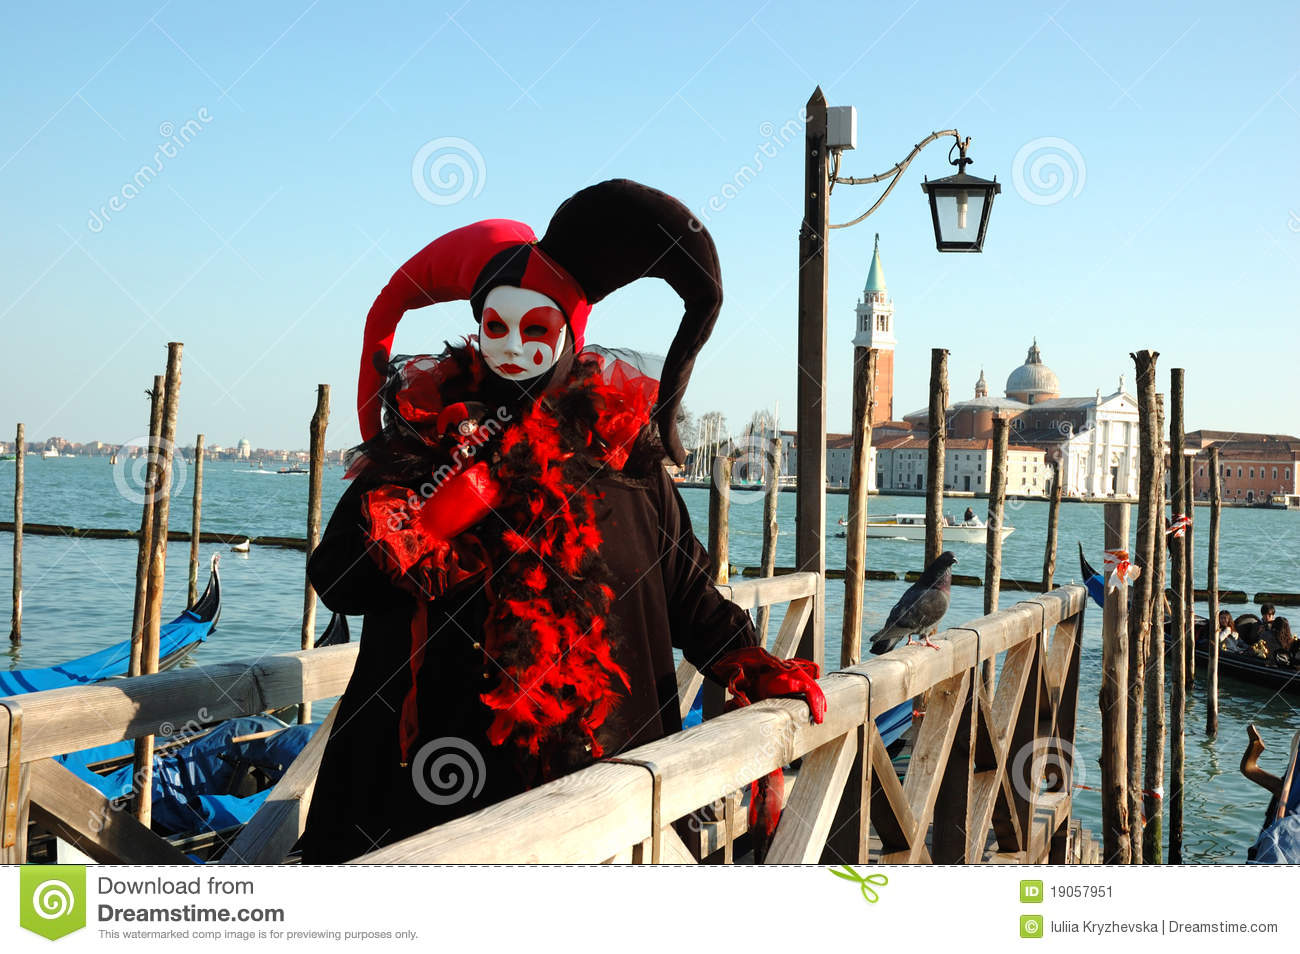 ... The annual carnival was held in 2011 from February 26th to March 8th